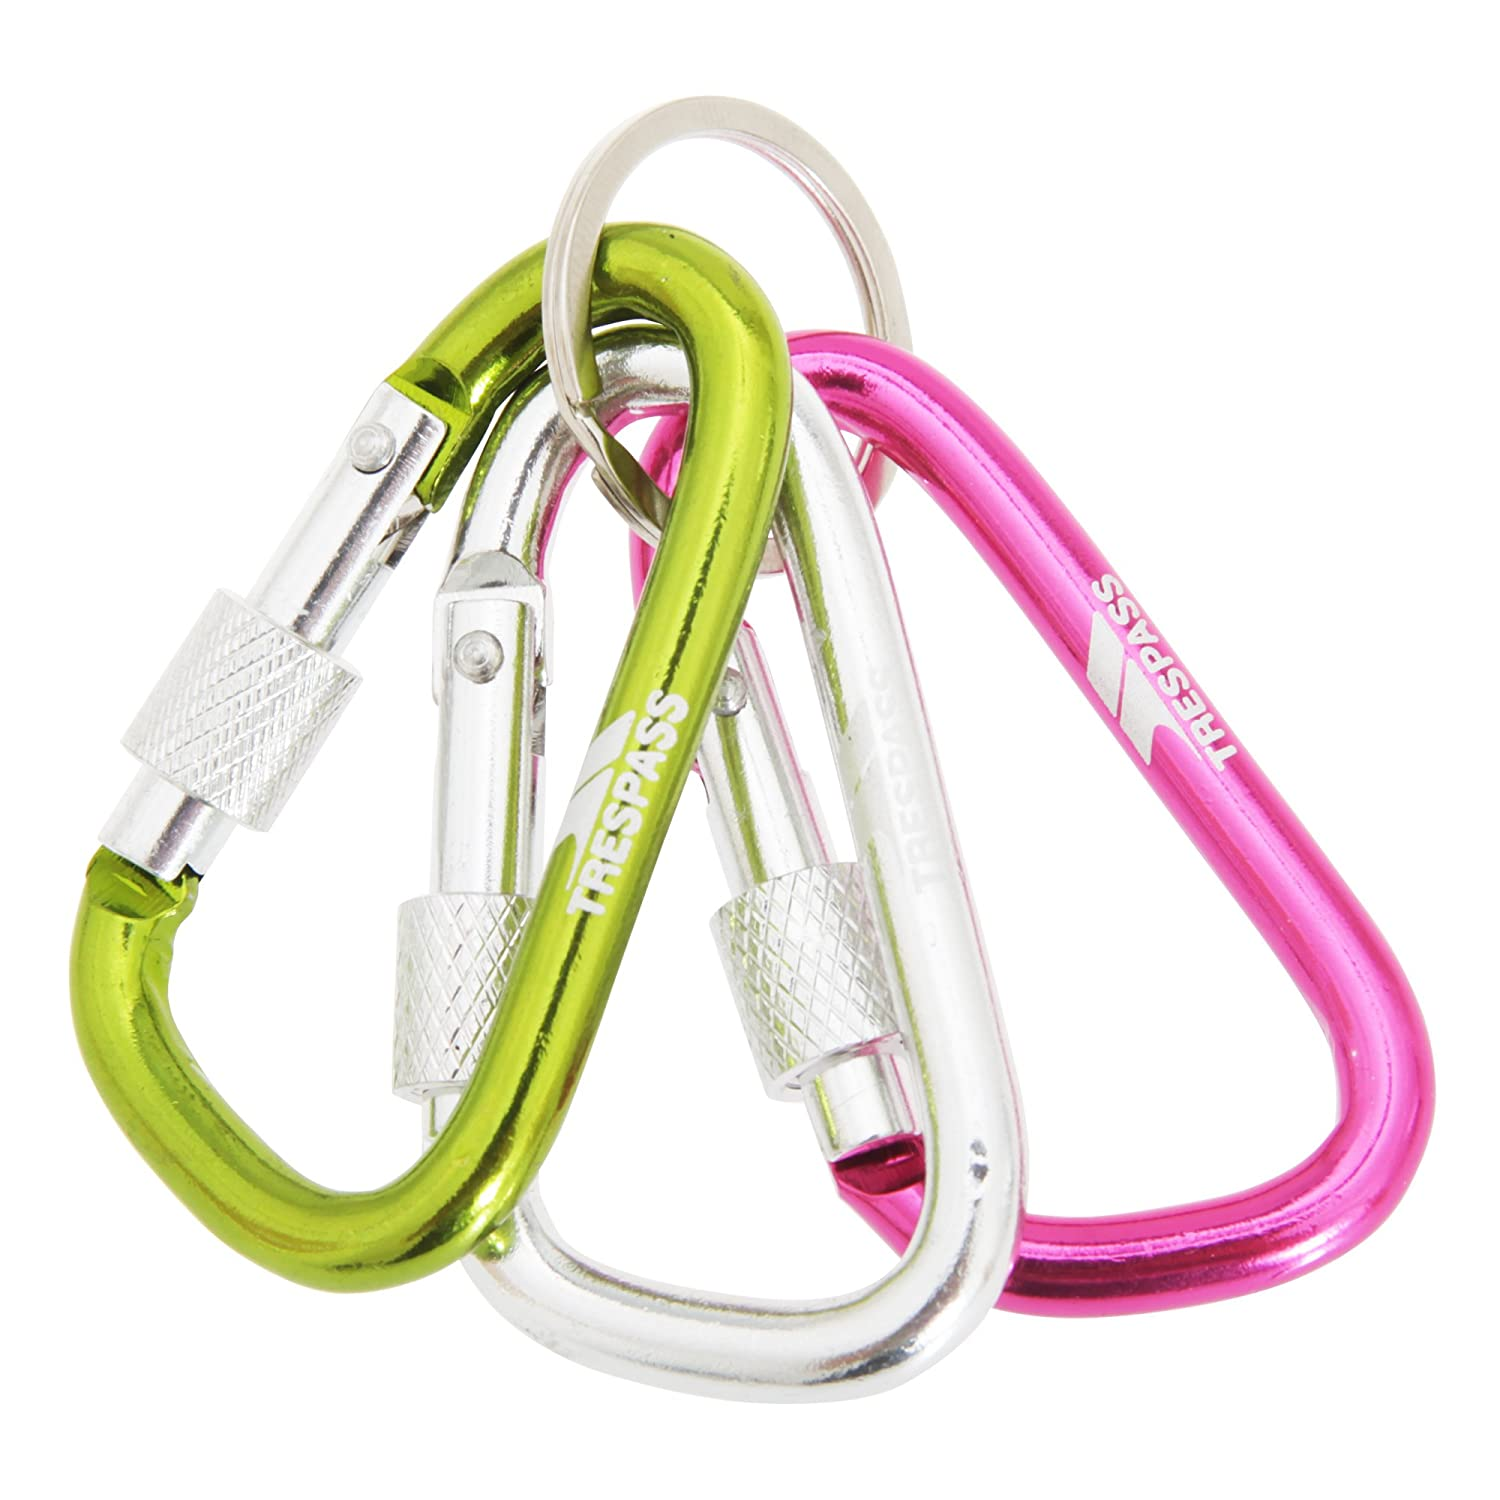 Trespass Lock X Carabiner Keyring Set